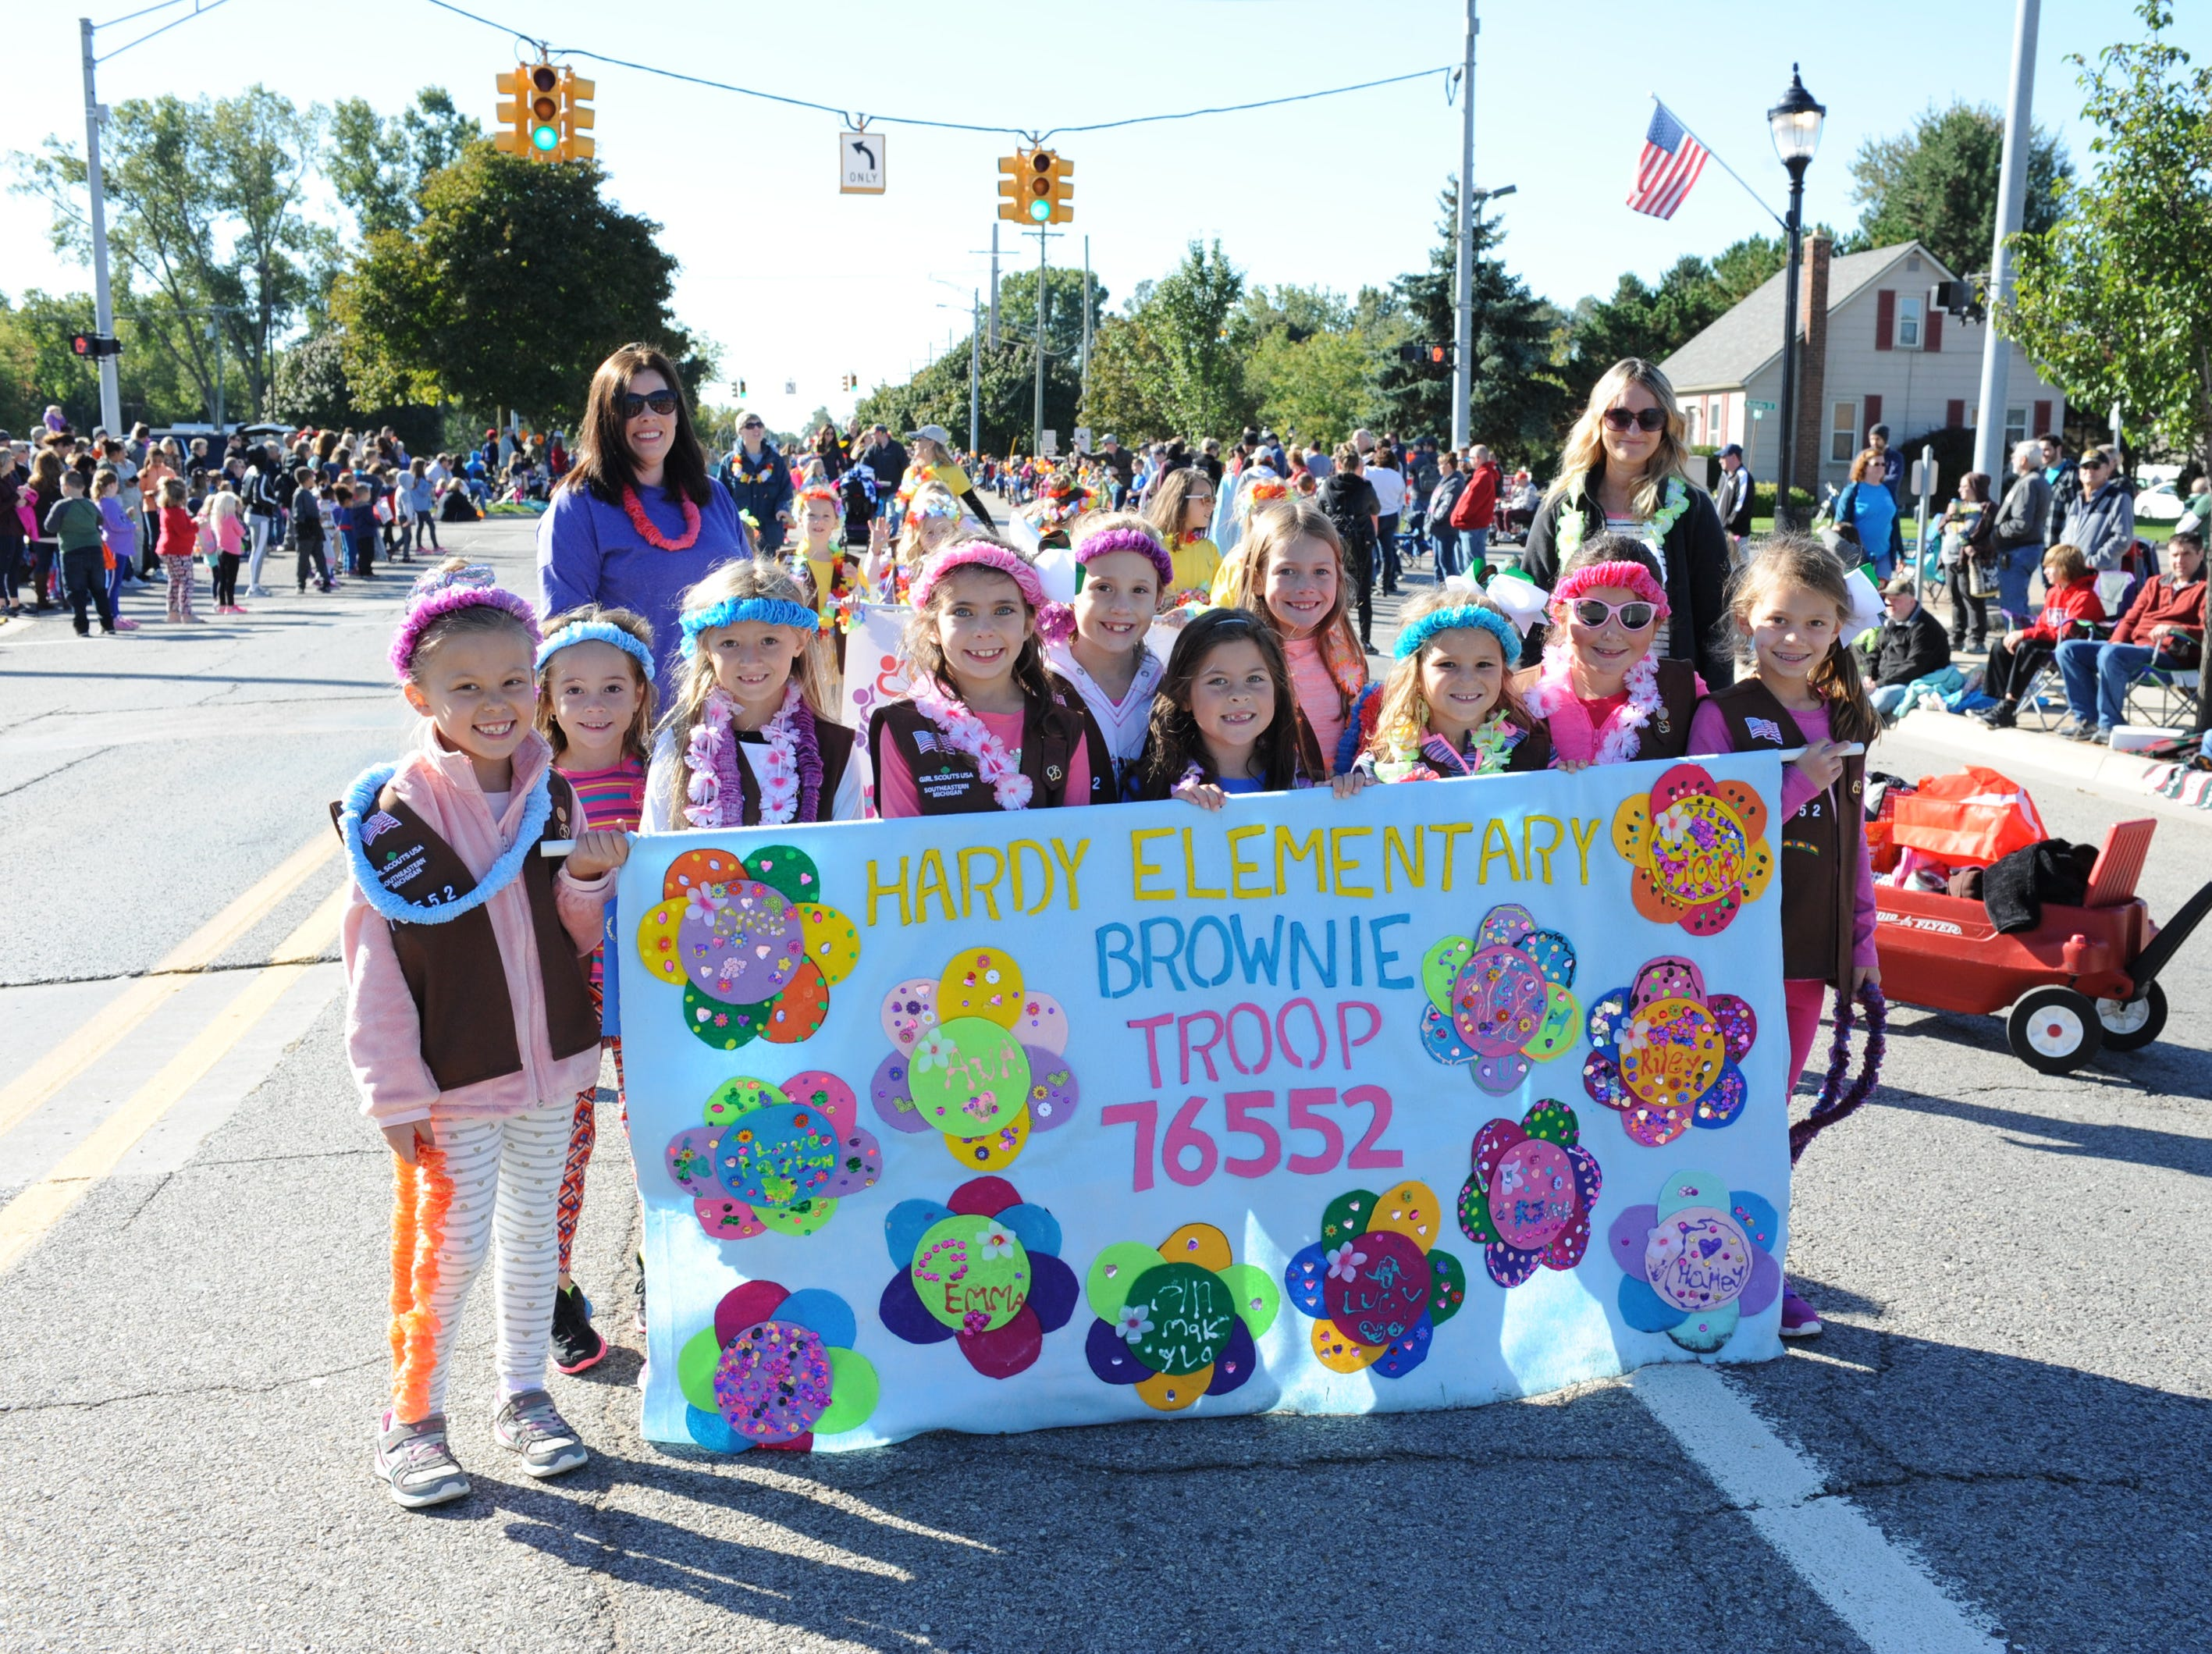 Hardy Elementary Brownie Troop 76552 are thrilled to be part of this year's parade.